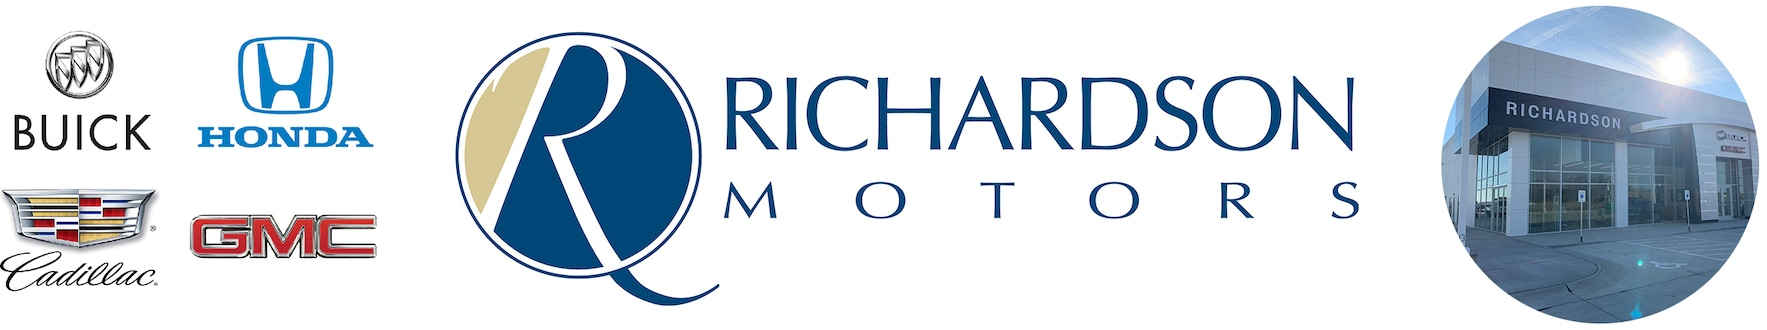 Richardson Motors